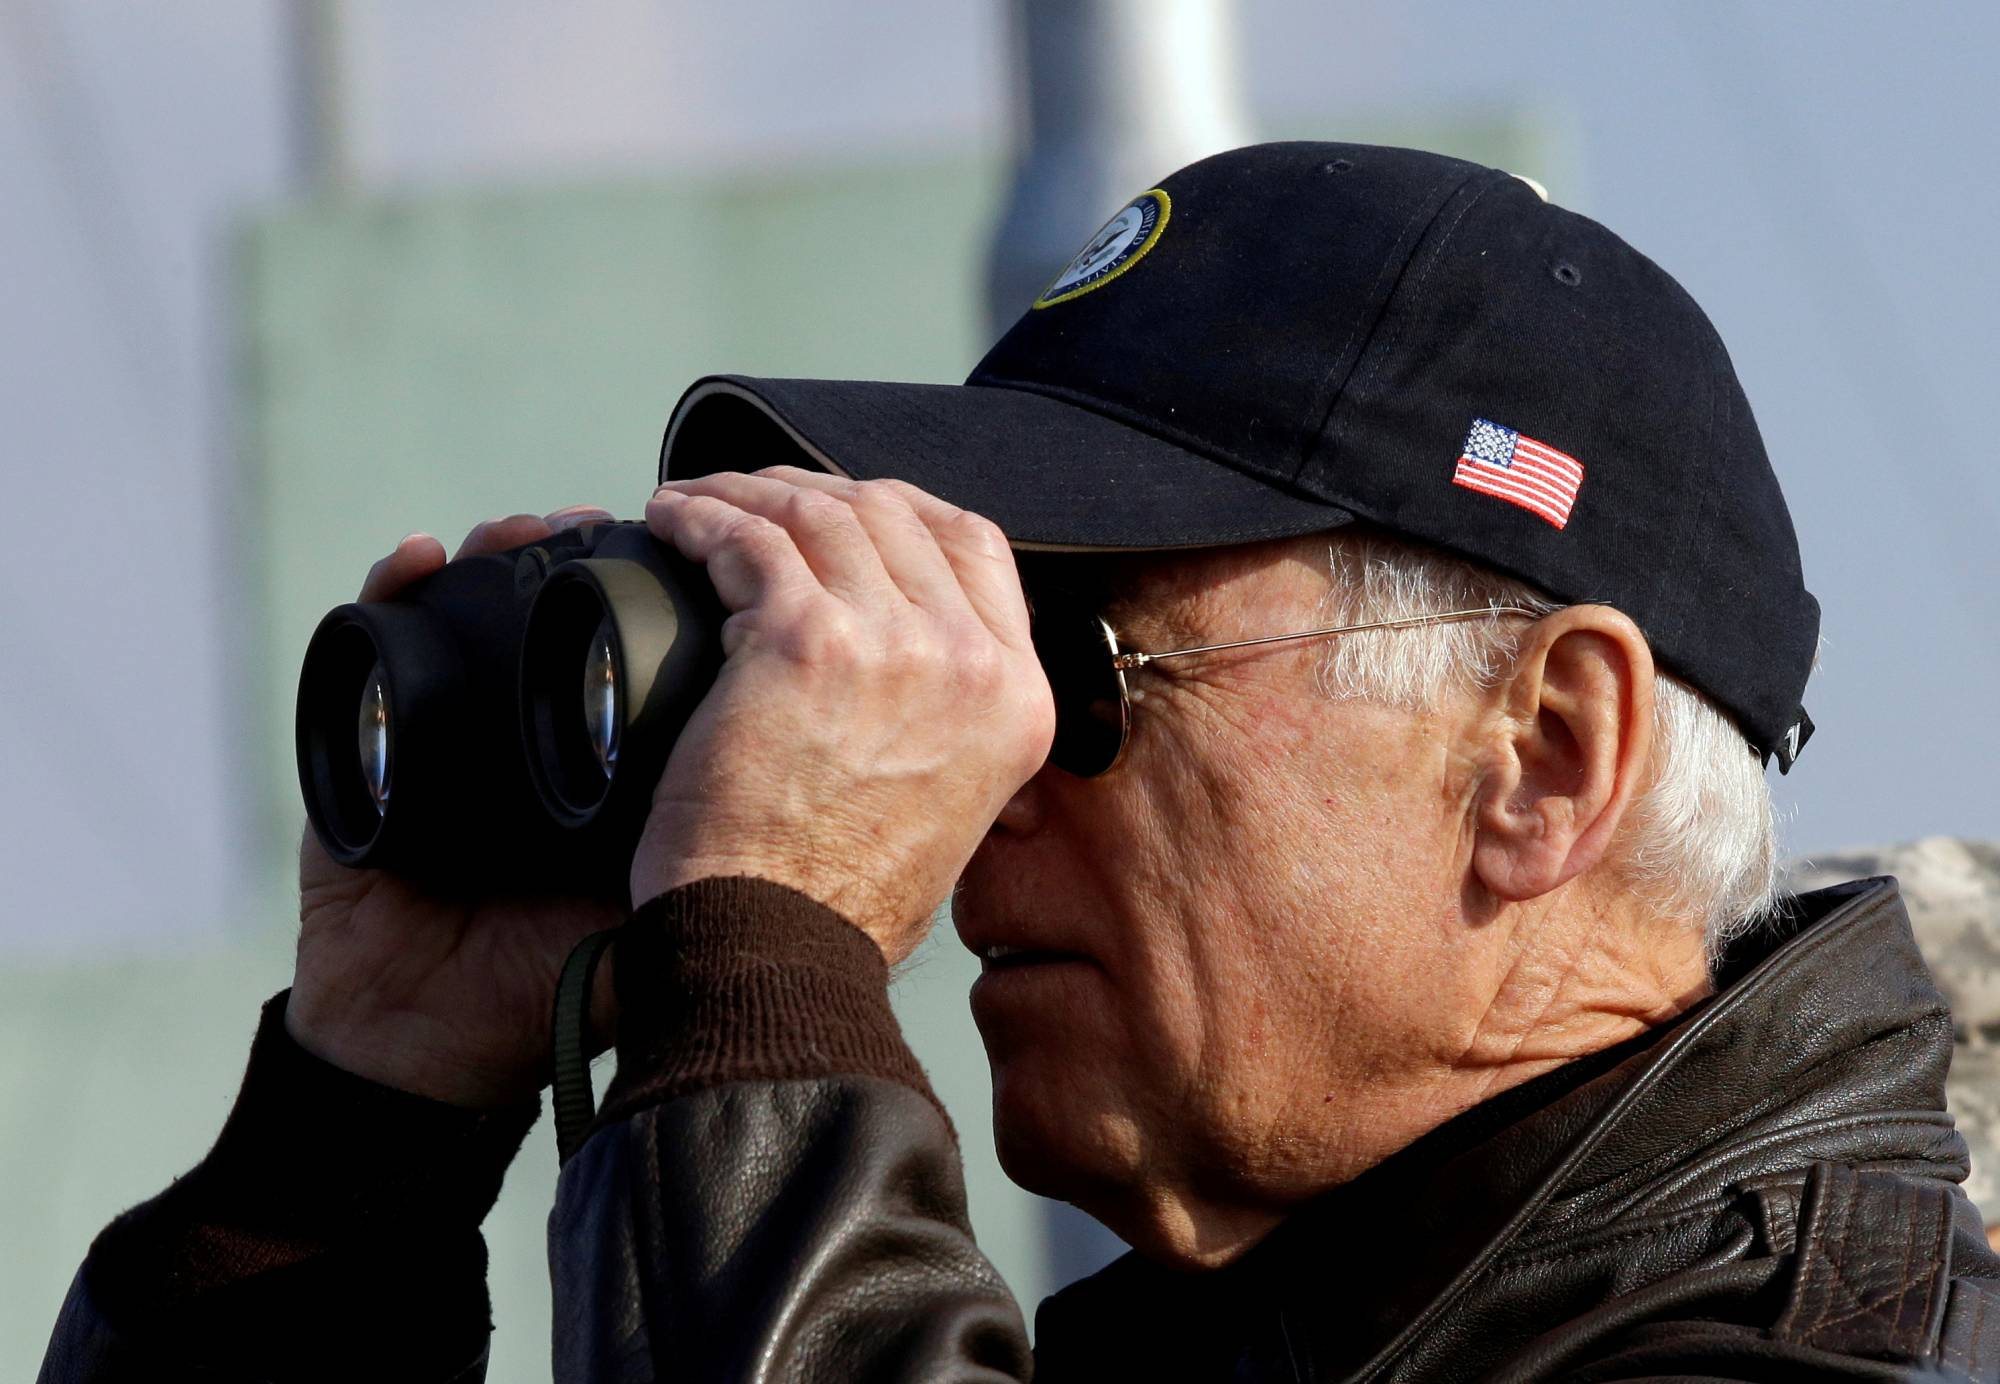 Then-U.S. Vice President Joe Biden looks through binoculars to see North Korea from Observation Post Ouellette during a tour of the Demilitarized Zone, the military border separating the two Koreas, in Panmunjom, South Korea, in December 2013. | POOL / VIA REUTERS